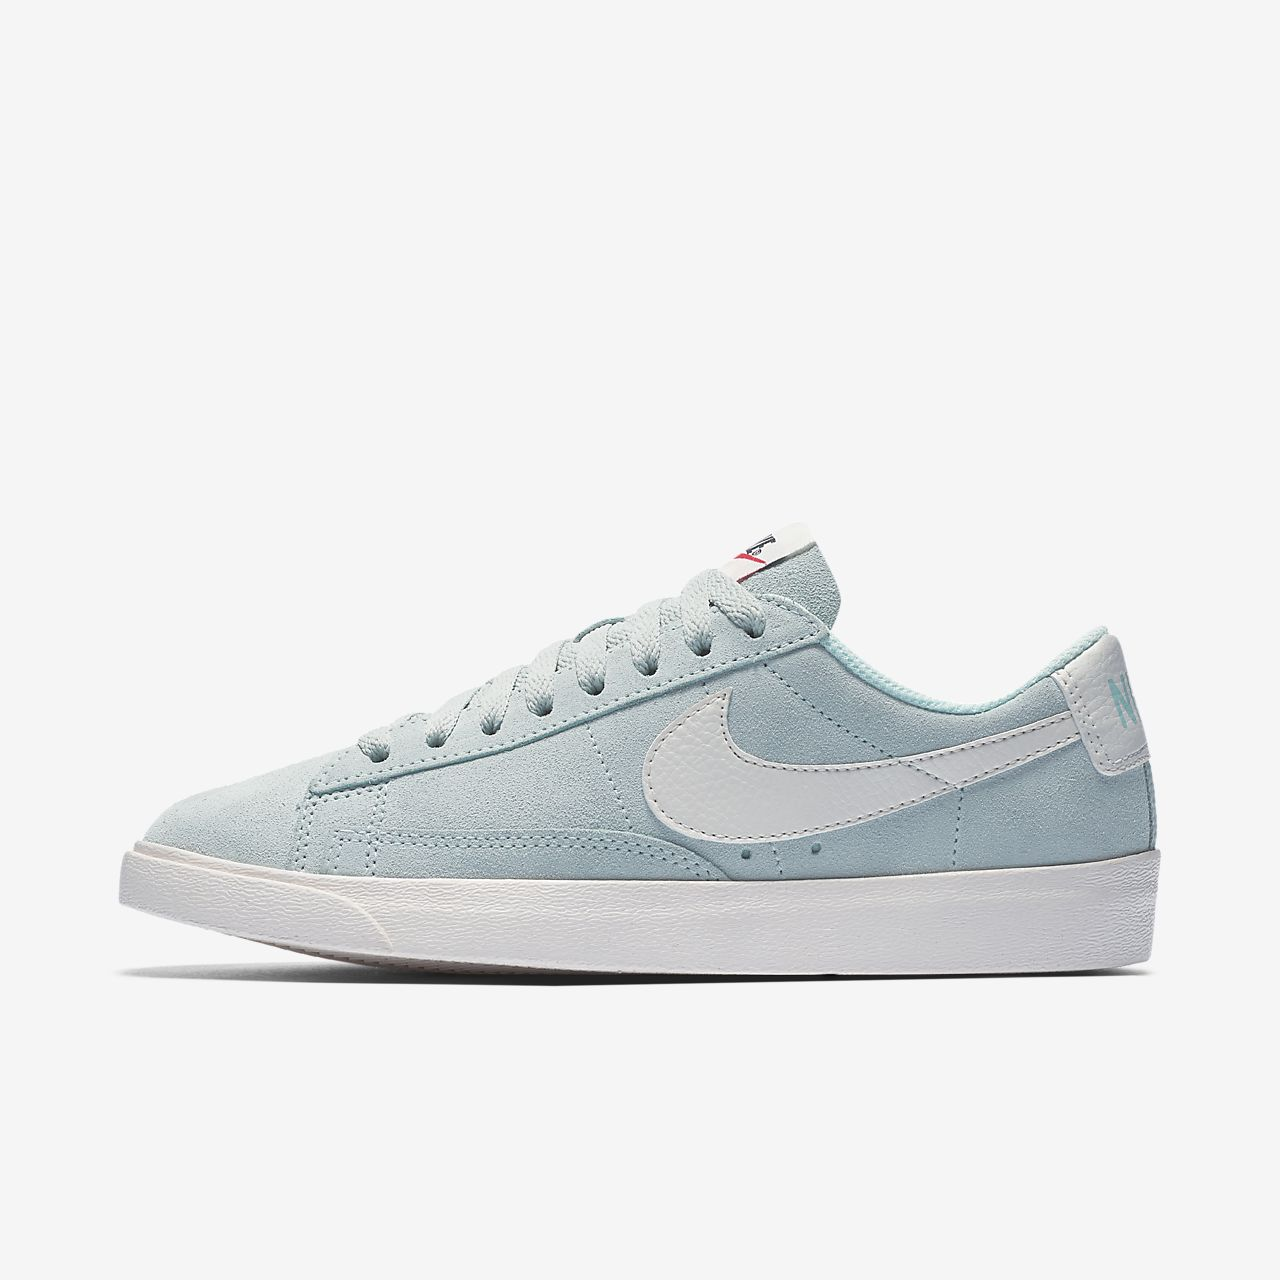 Nike Blazer High Women's Shoes